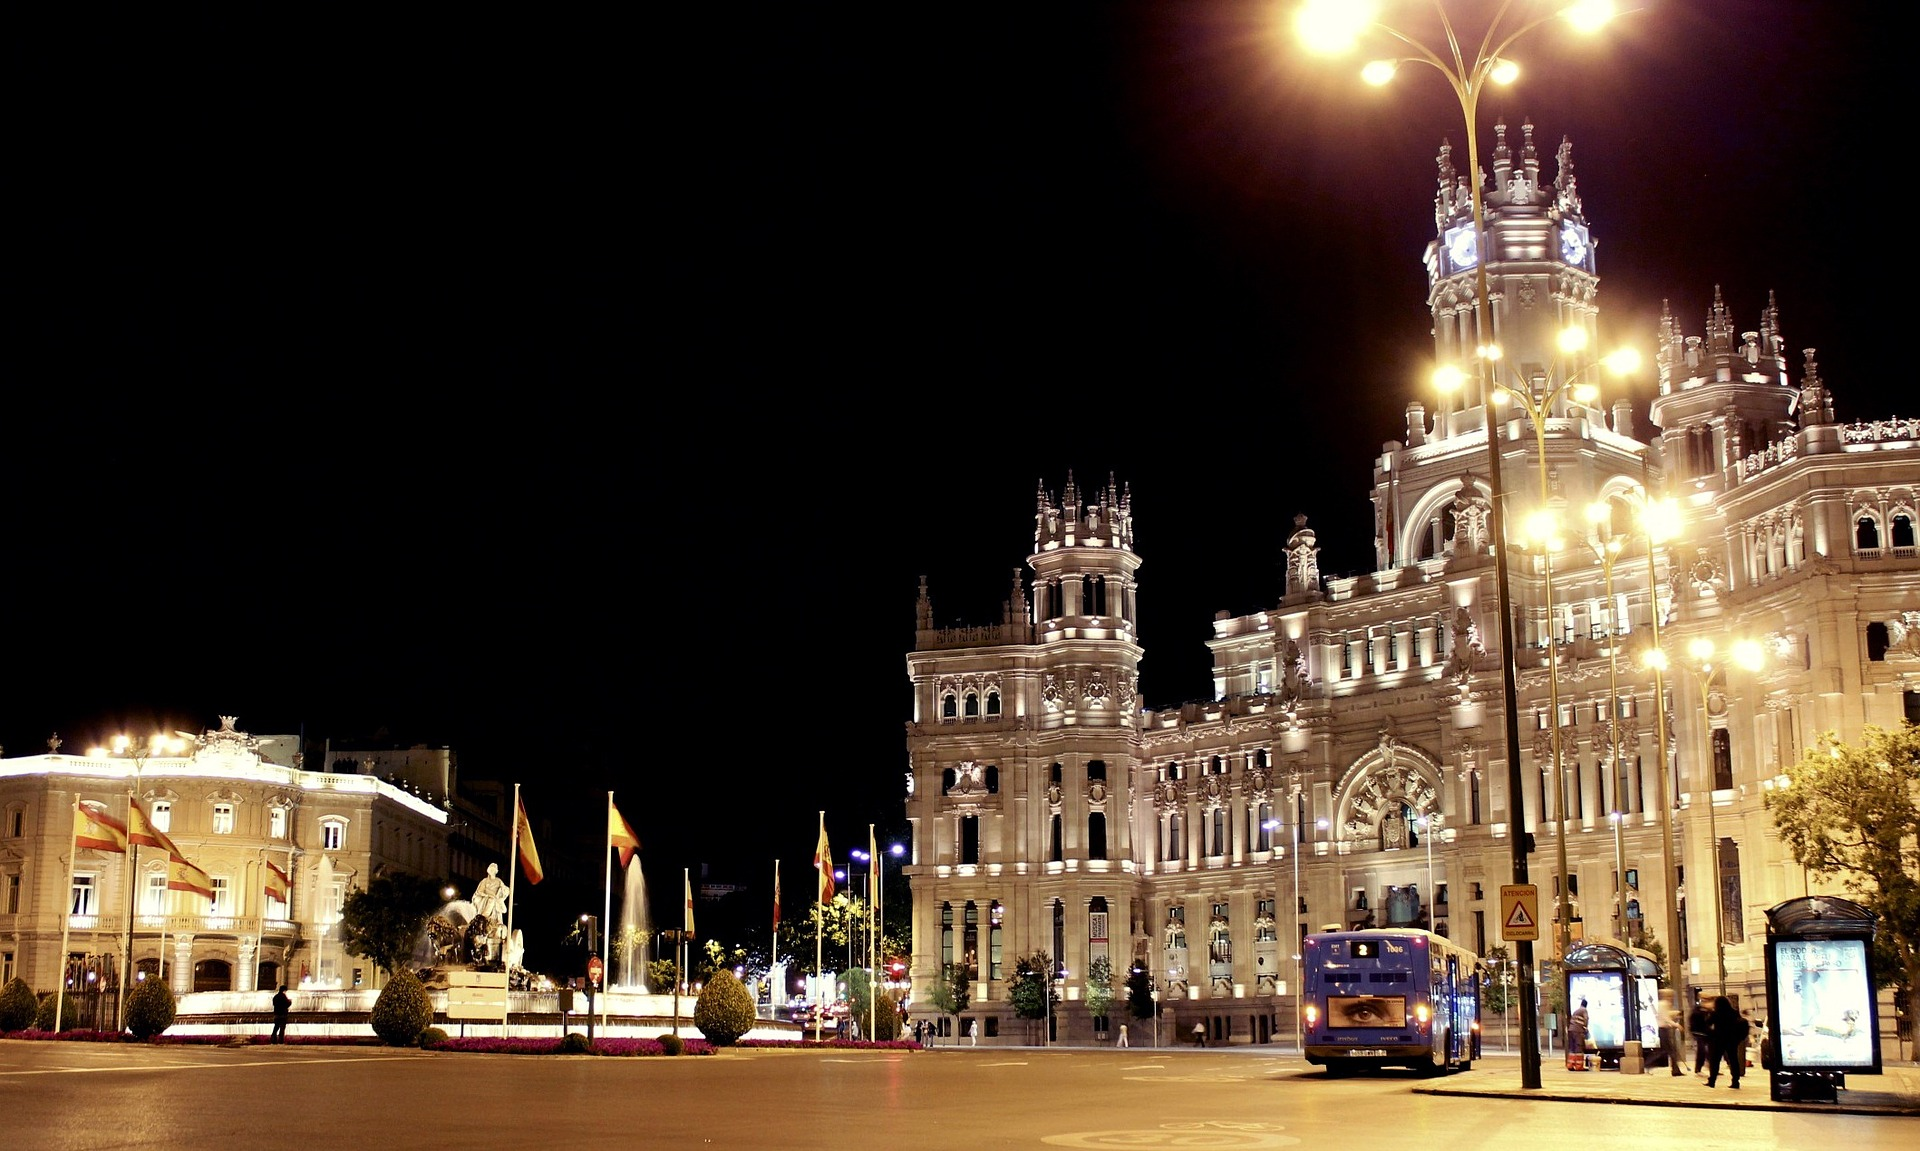 Cybele Palace, Madrid, Spain at night